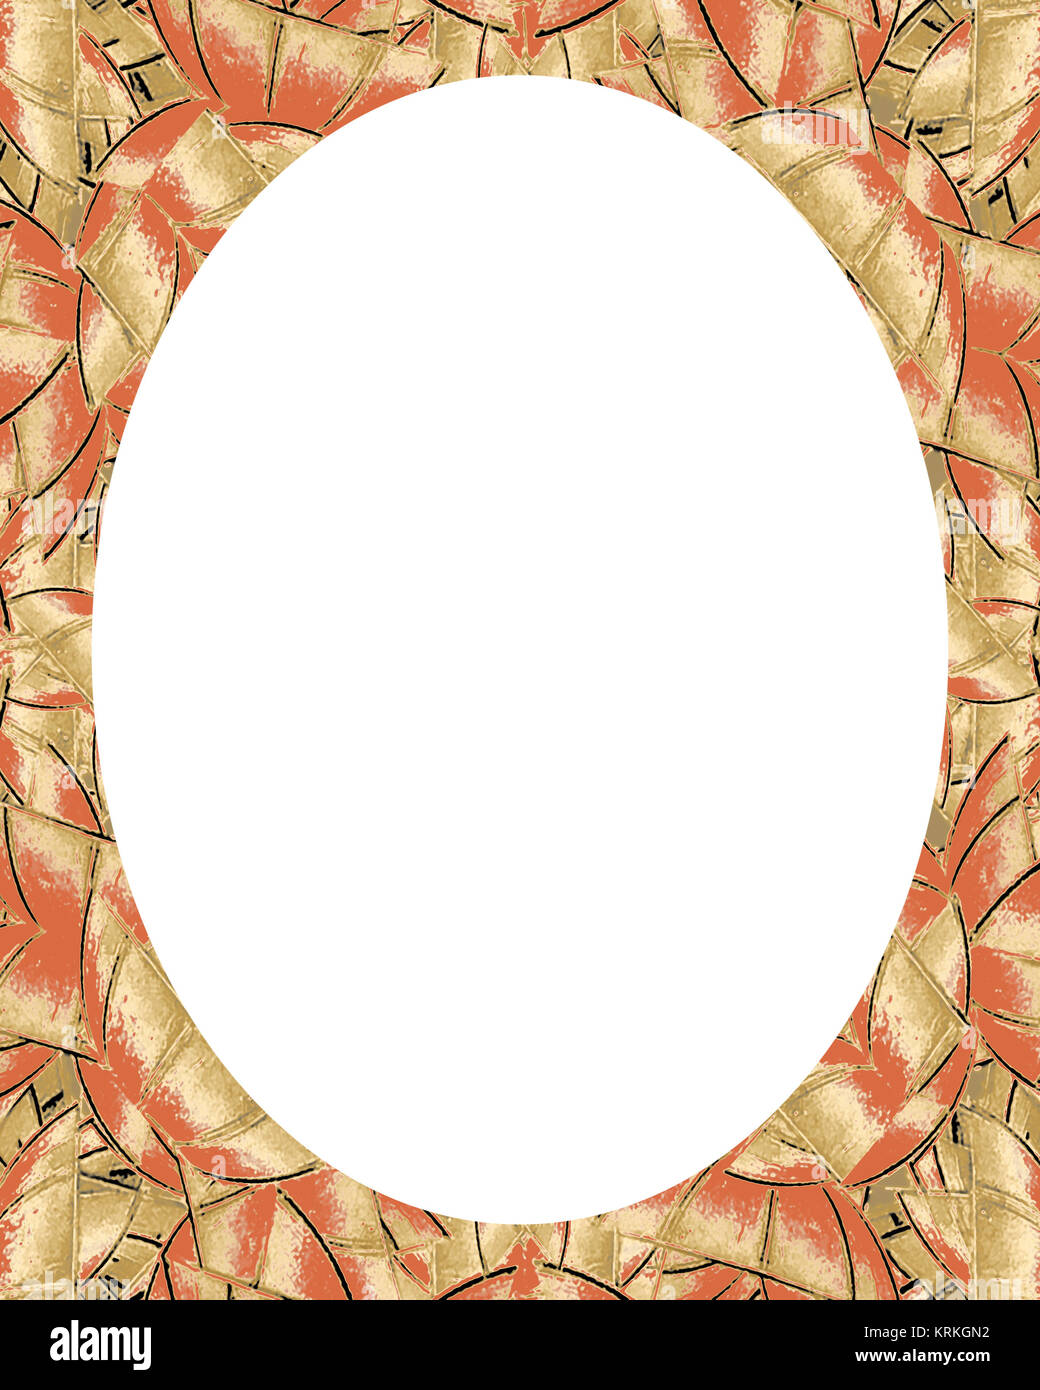 Circle Frame Background with Decorated Borders - Stock Image